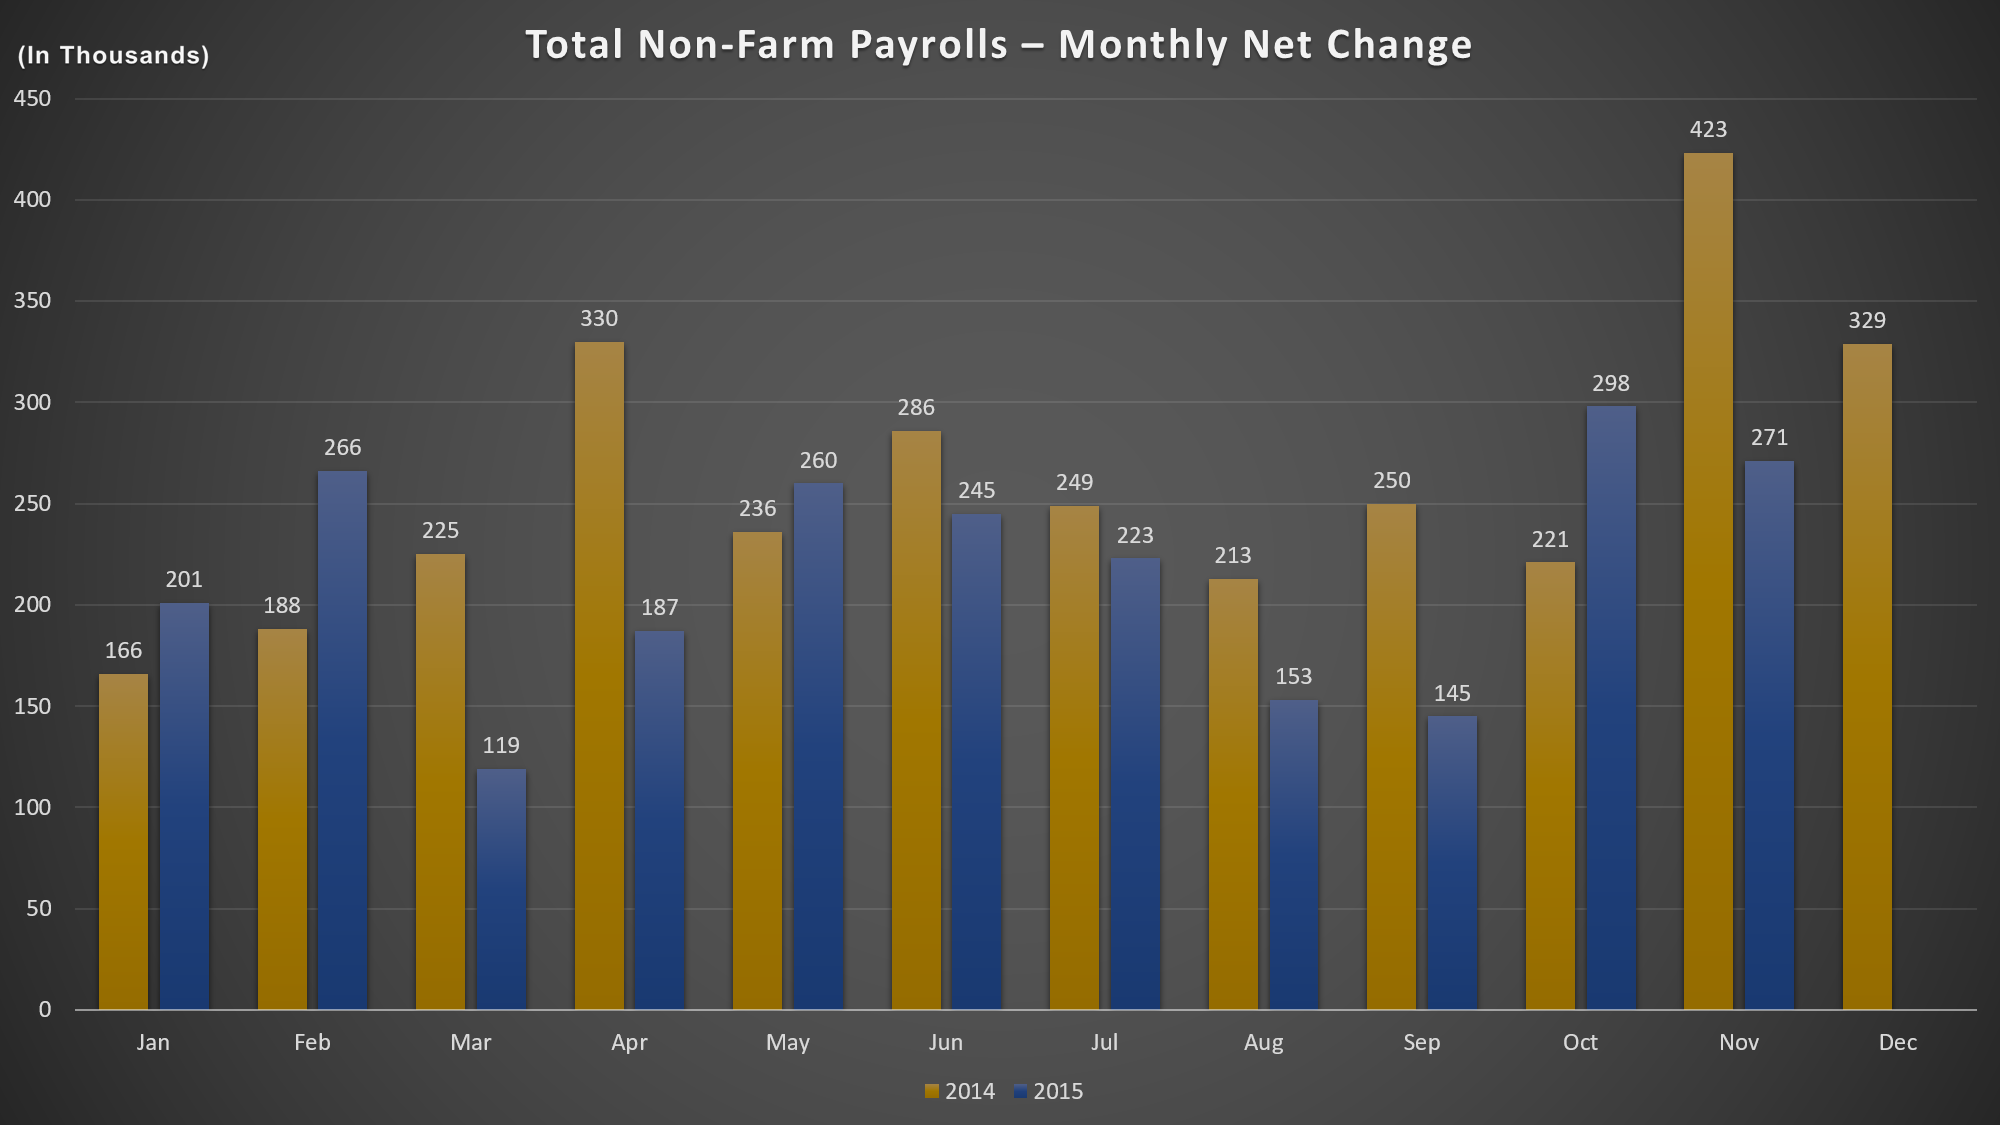 Total Non-Farm Payrolls – Monthly Net Change